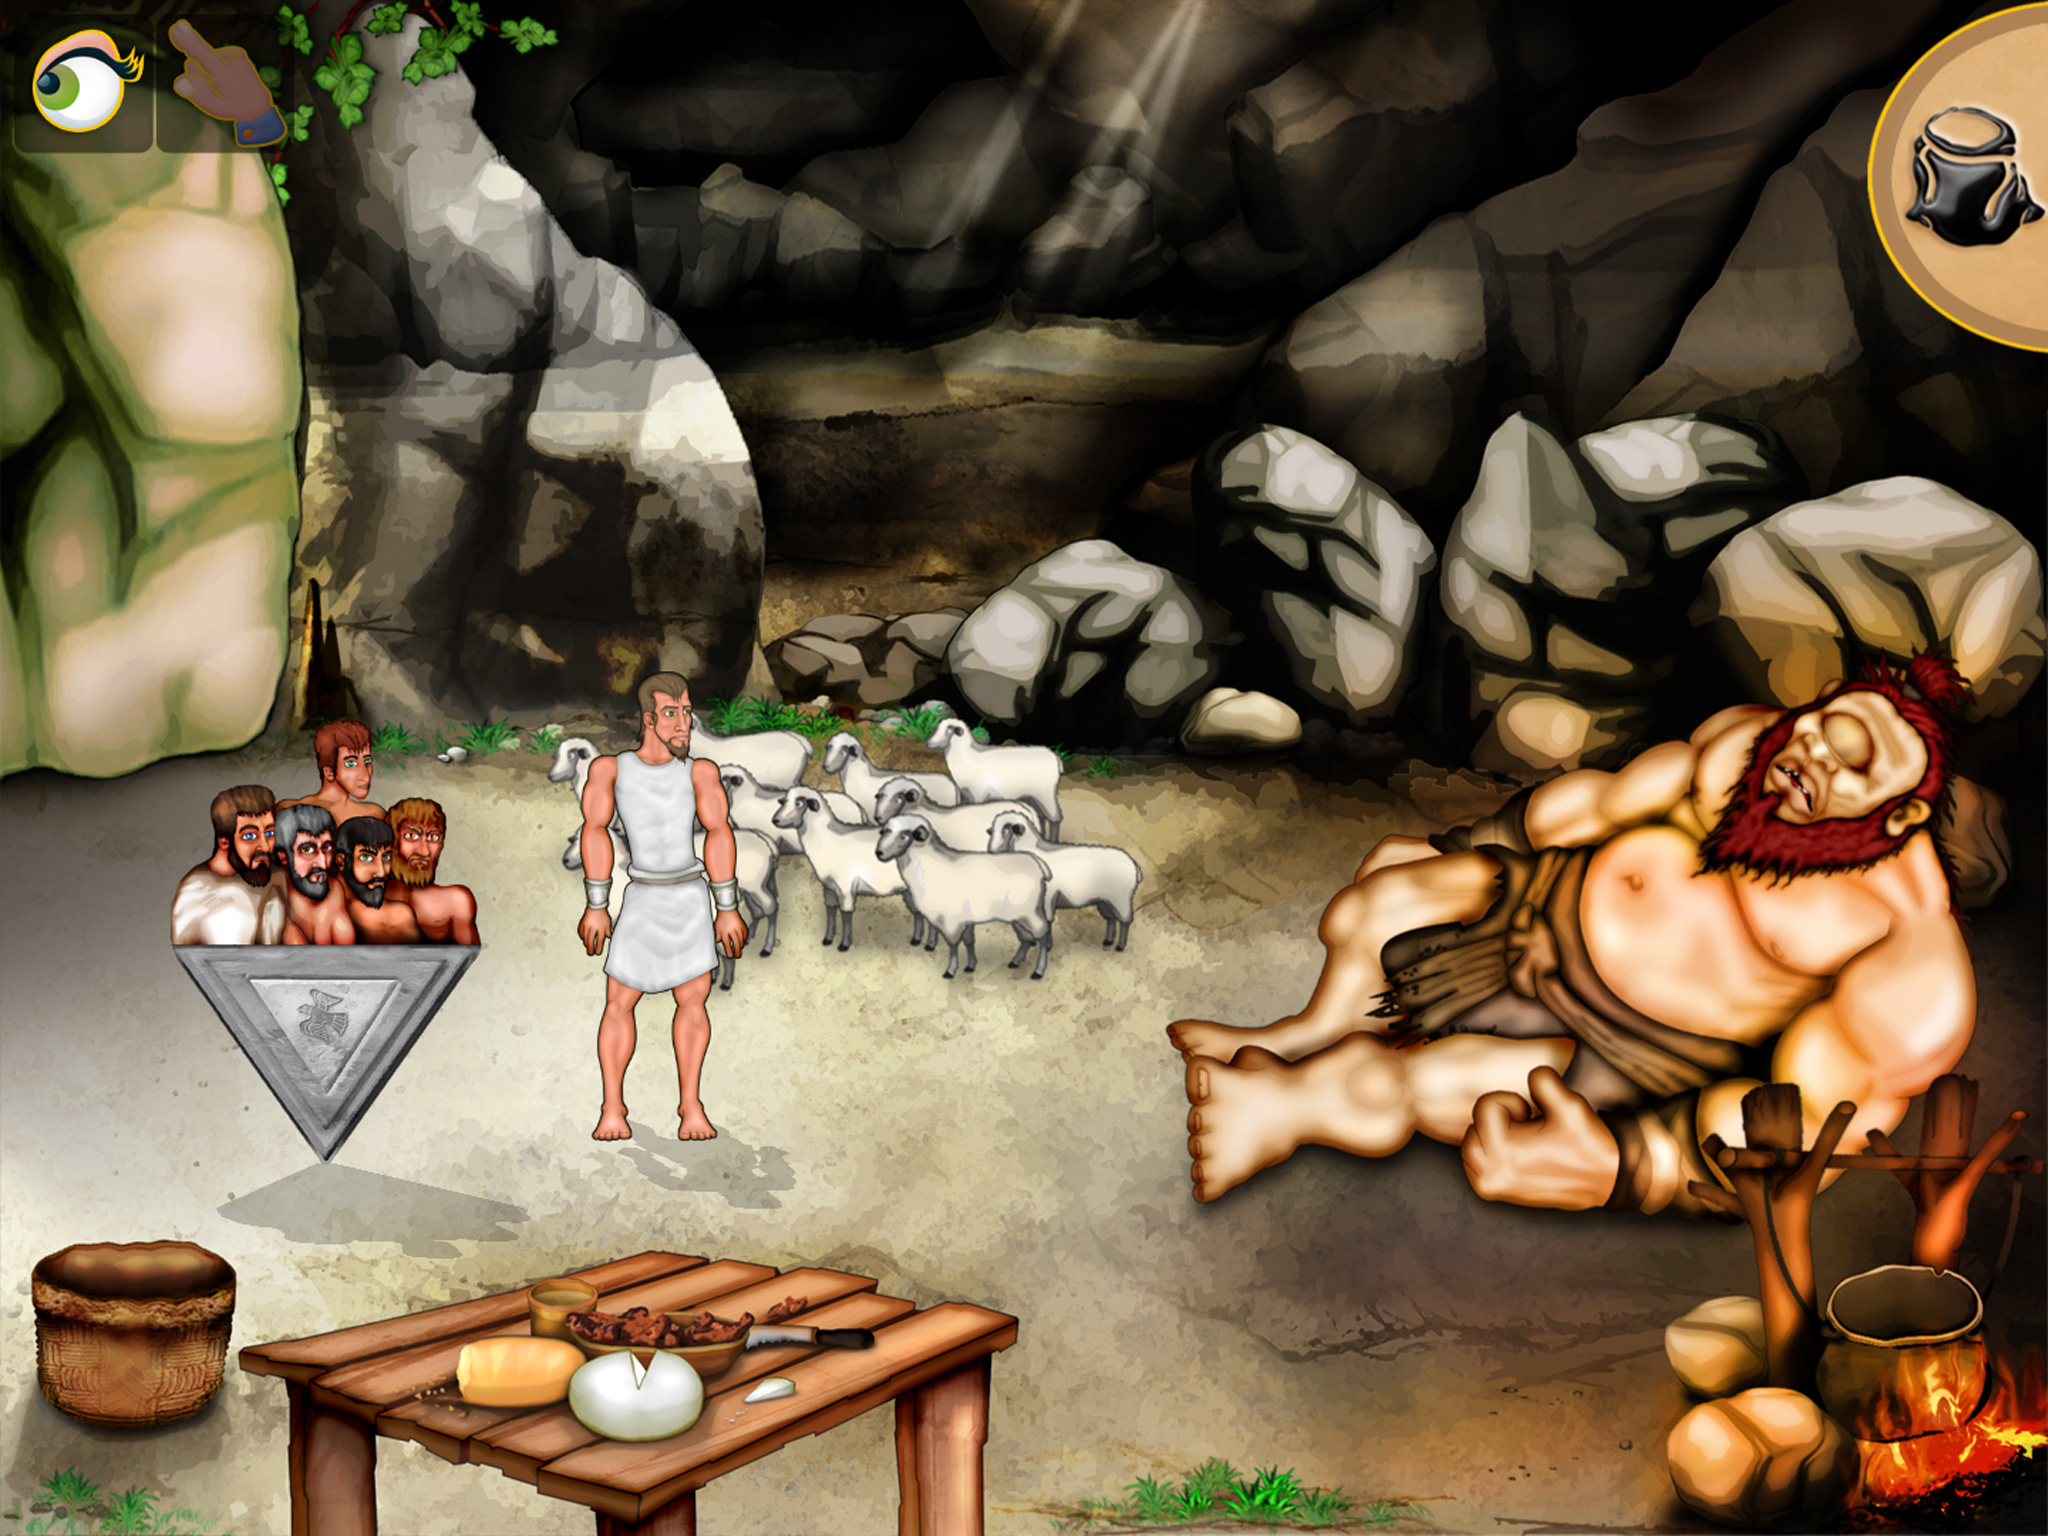 The Fall Of Troy Wallpaper In The Cyclops Cave Image The Odyssey Hd Indie Db